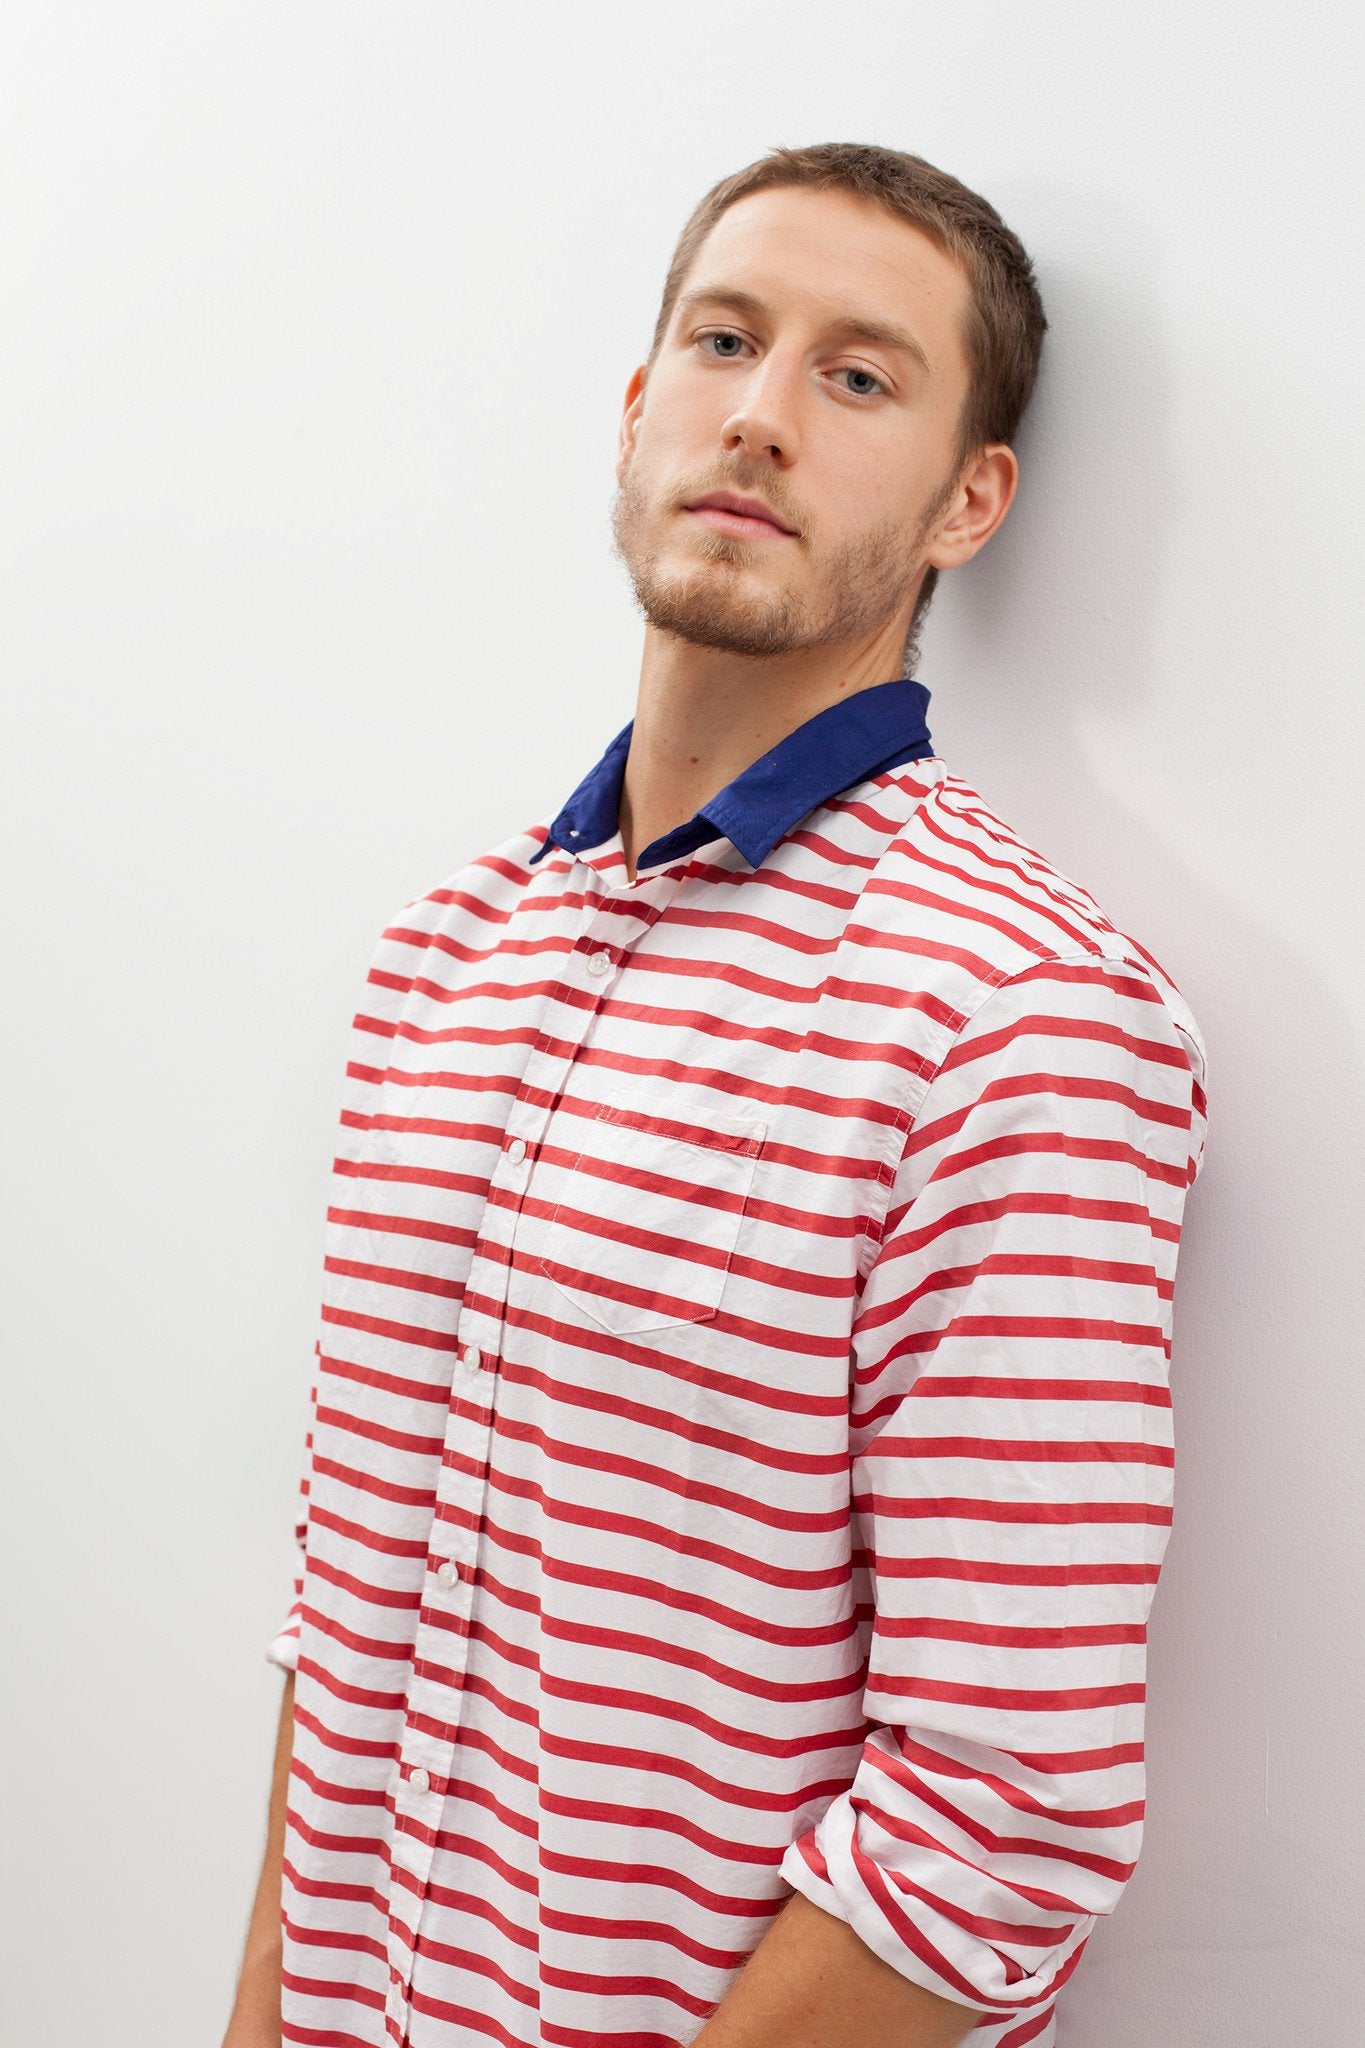 Luke Shirt in Red Stripe